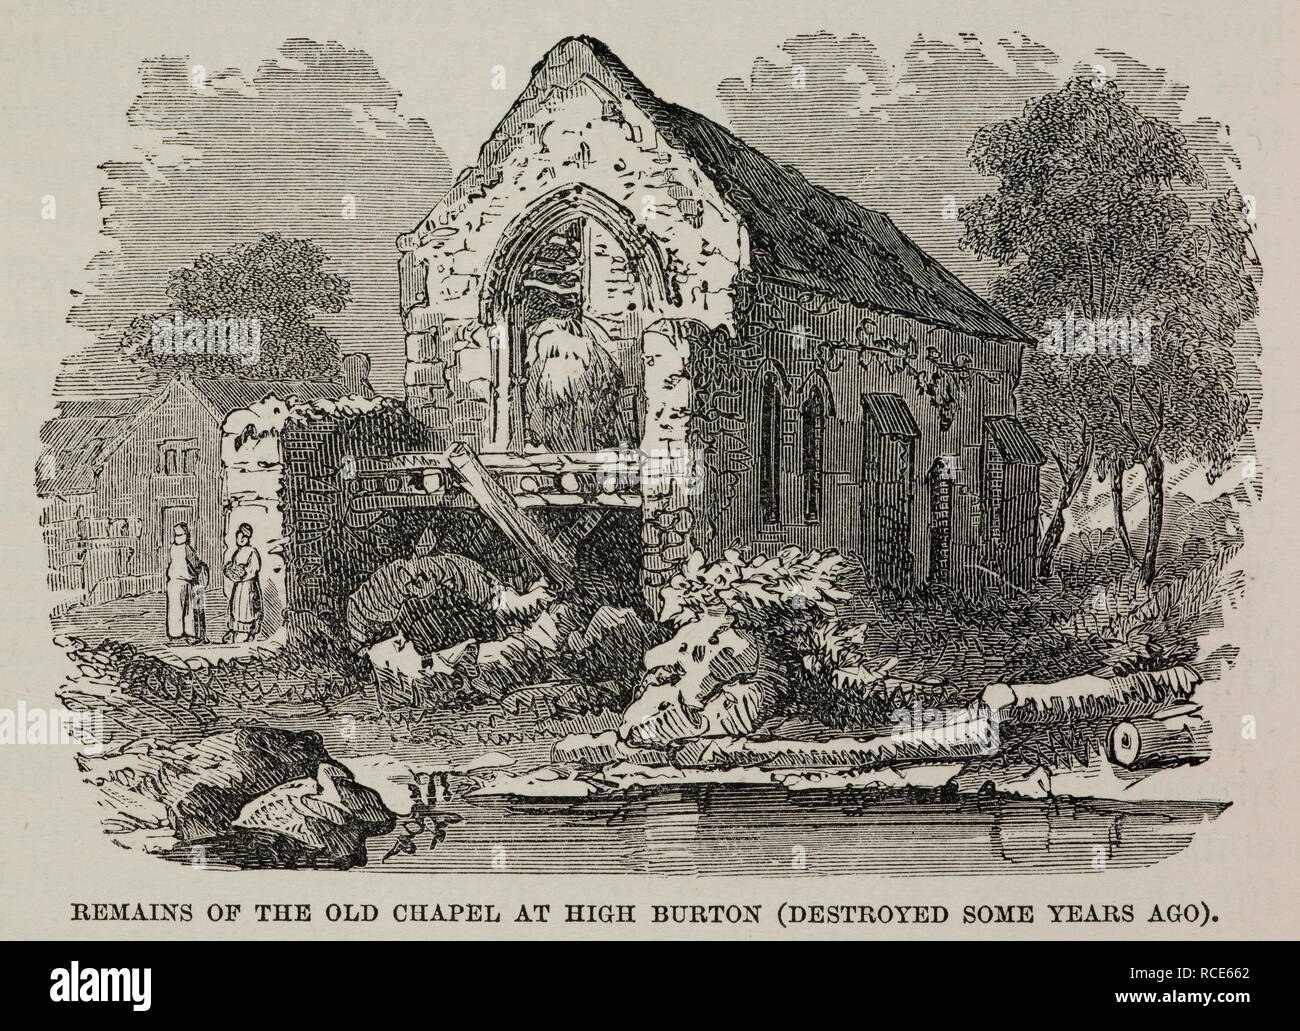 The Old Chapel at High Burton.  A ruined building destroyed in the 19th century. Sketch. History of the Borough of Preston and its environs, in the county of Lancaster. Preston, Lancaster. 1857, HARDWICK, Charles, of Preston. Source: 10358.f.17 188 (det). Language: English. - Stock Image